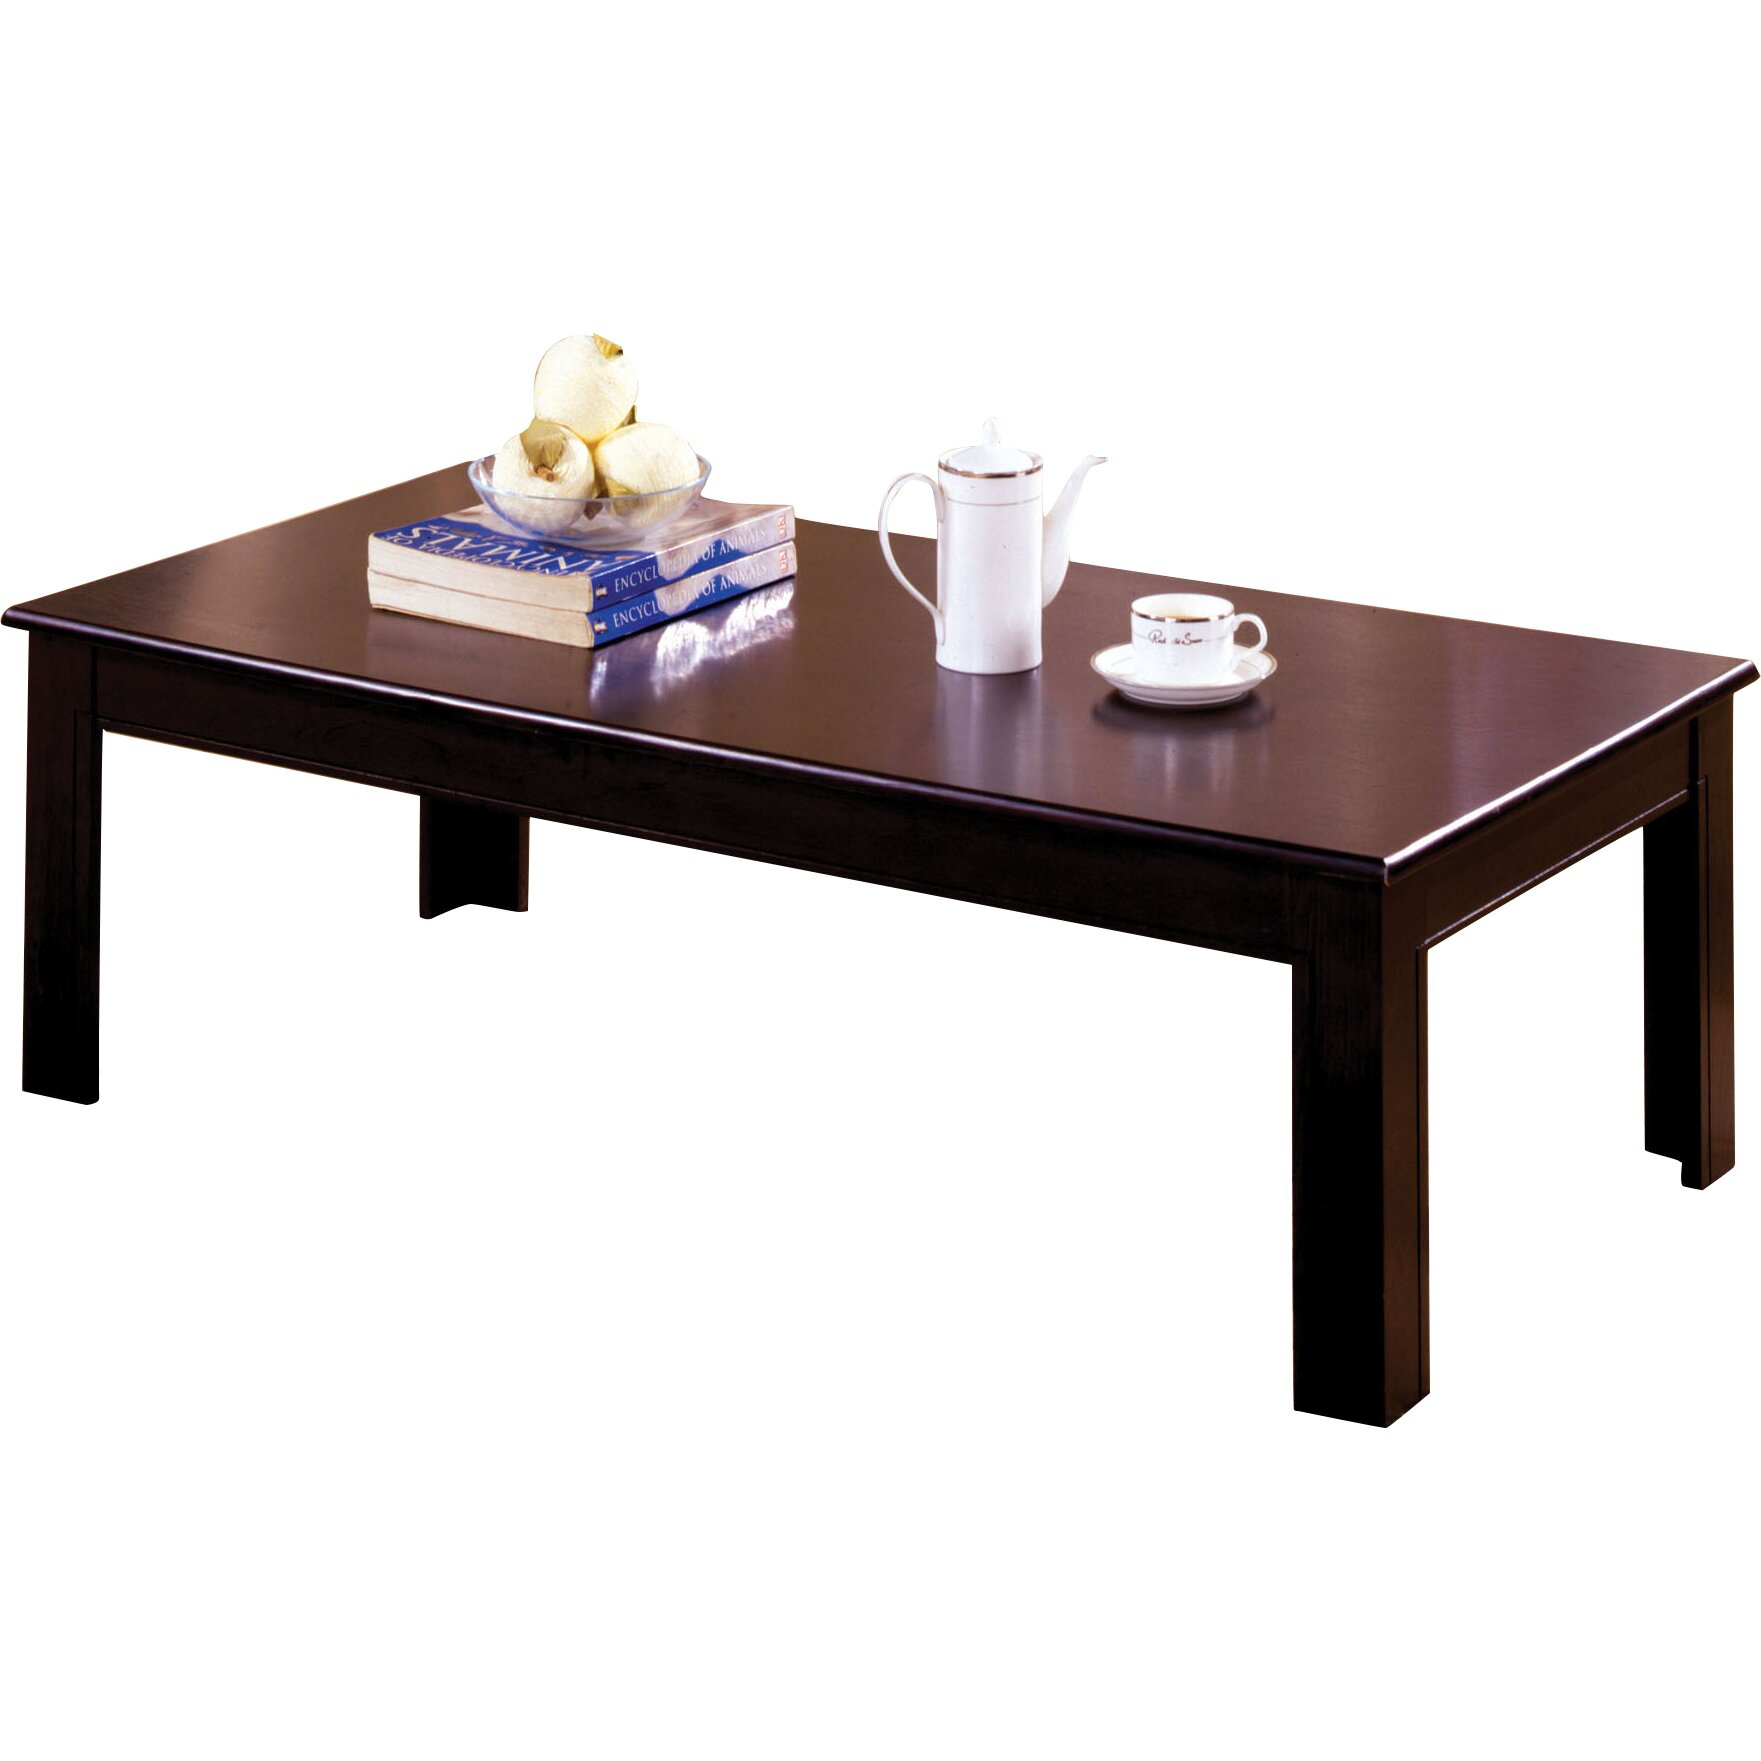 Hokku Designs Frixe 3 Piece Coffee Table Set Reviews Wayfair: one piece glass coffee table